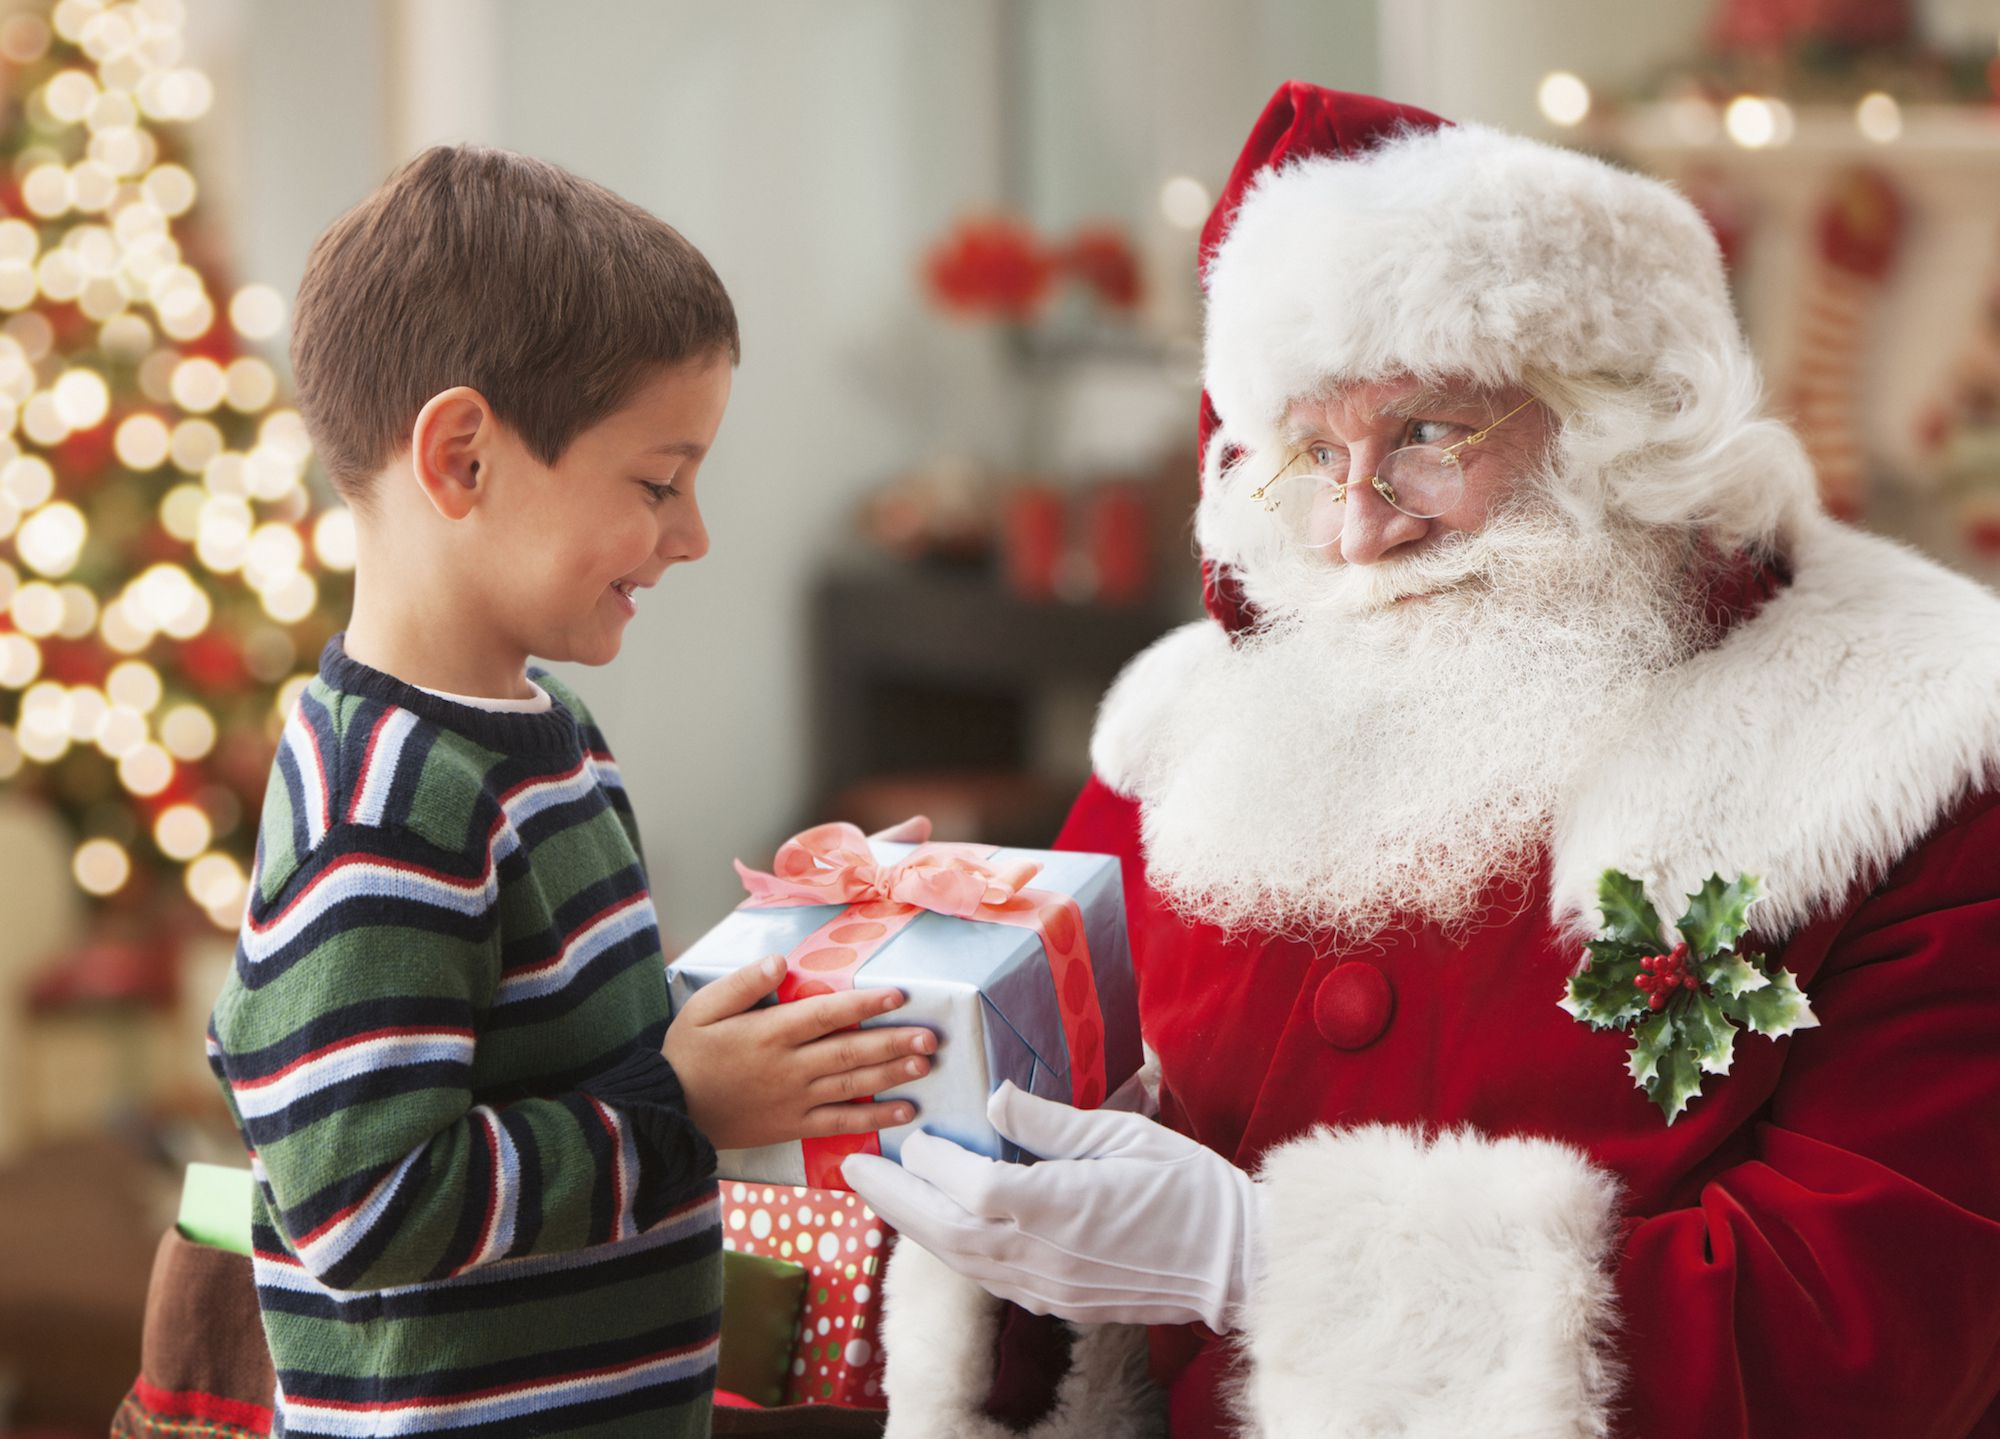 How to Respond When Your Child Asks Is Santa Real